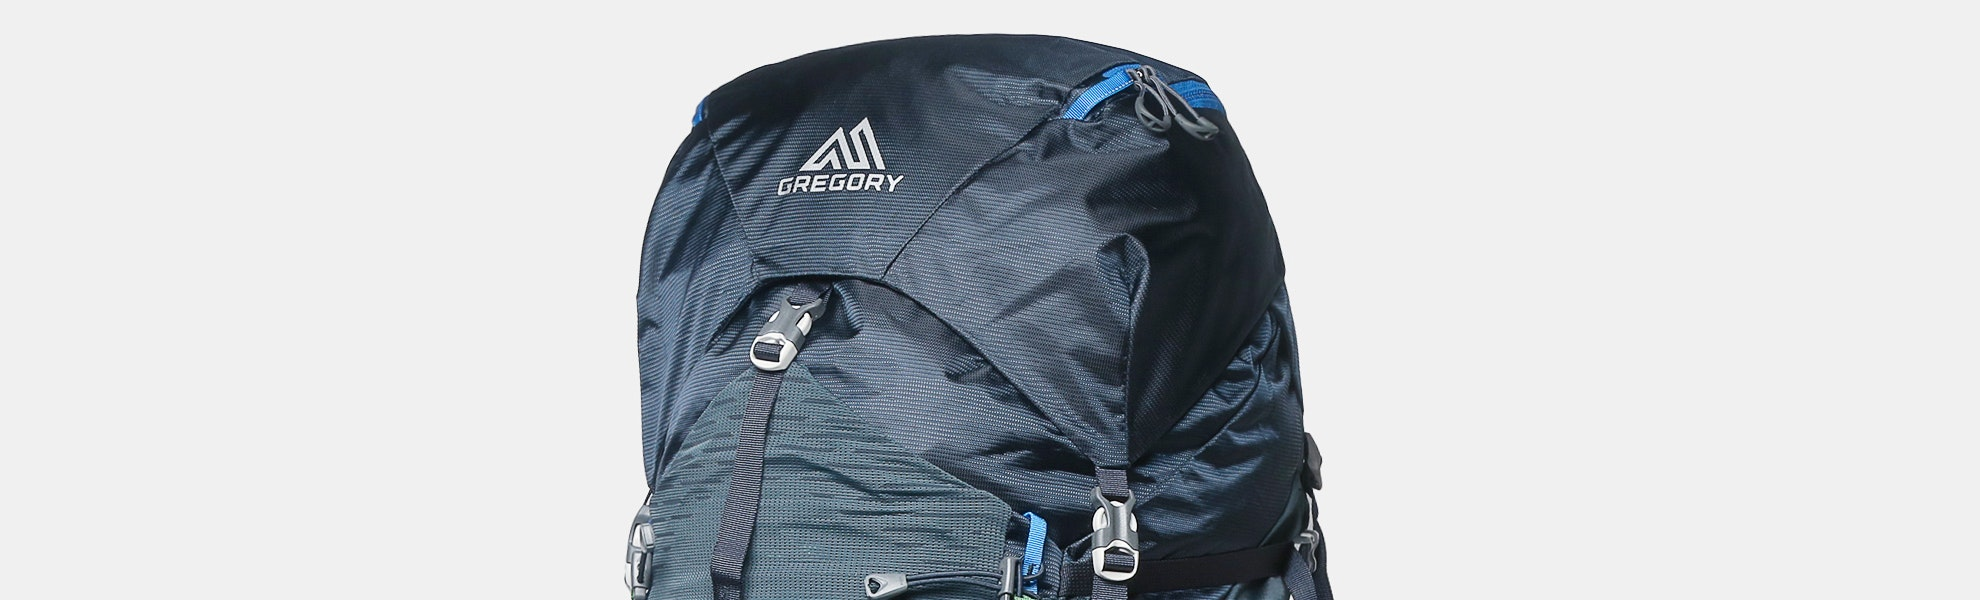 Gregory Stout & Amber Backpacks